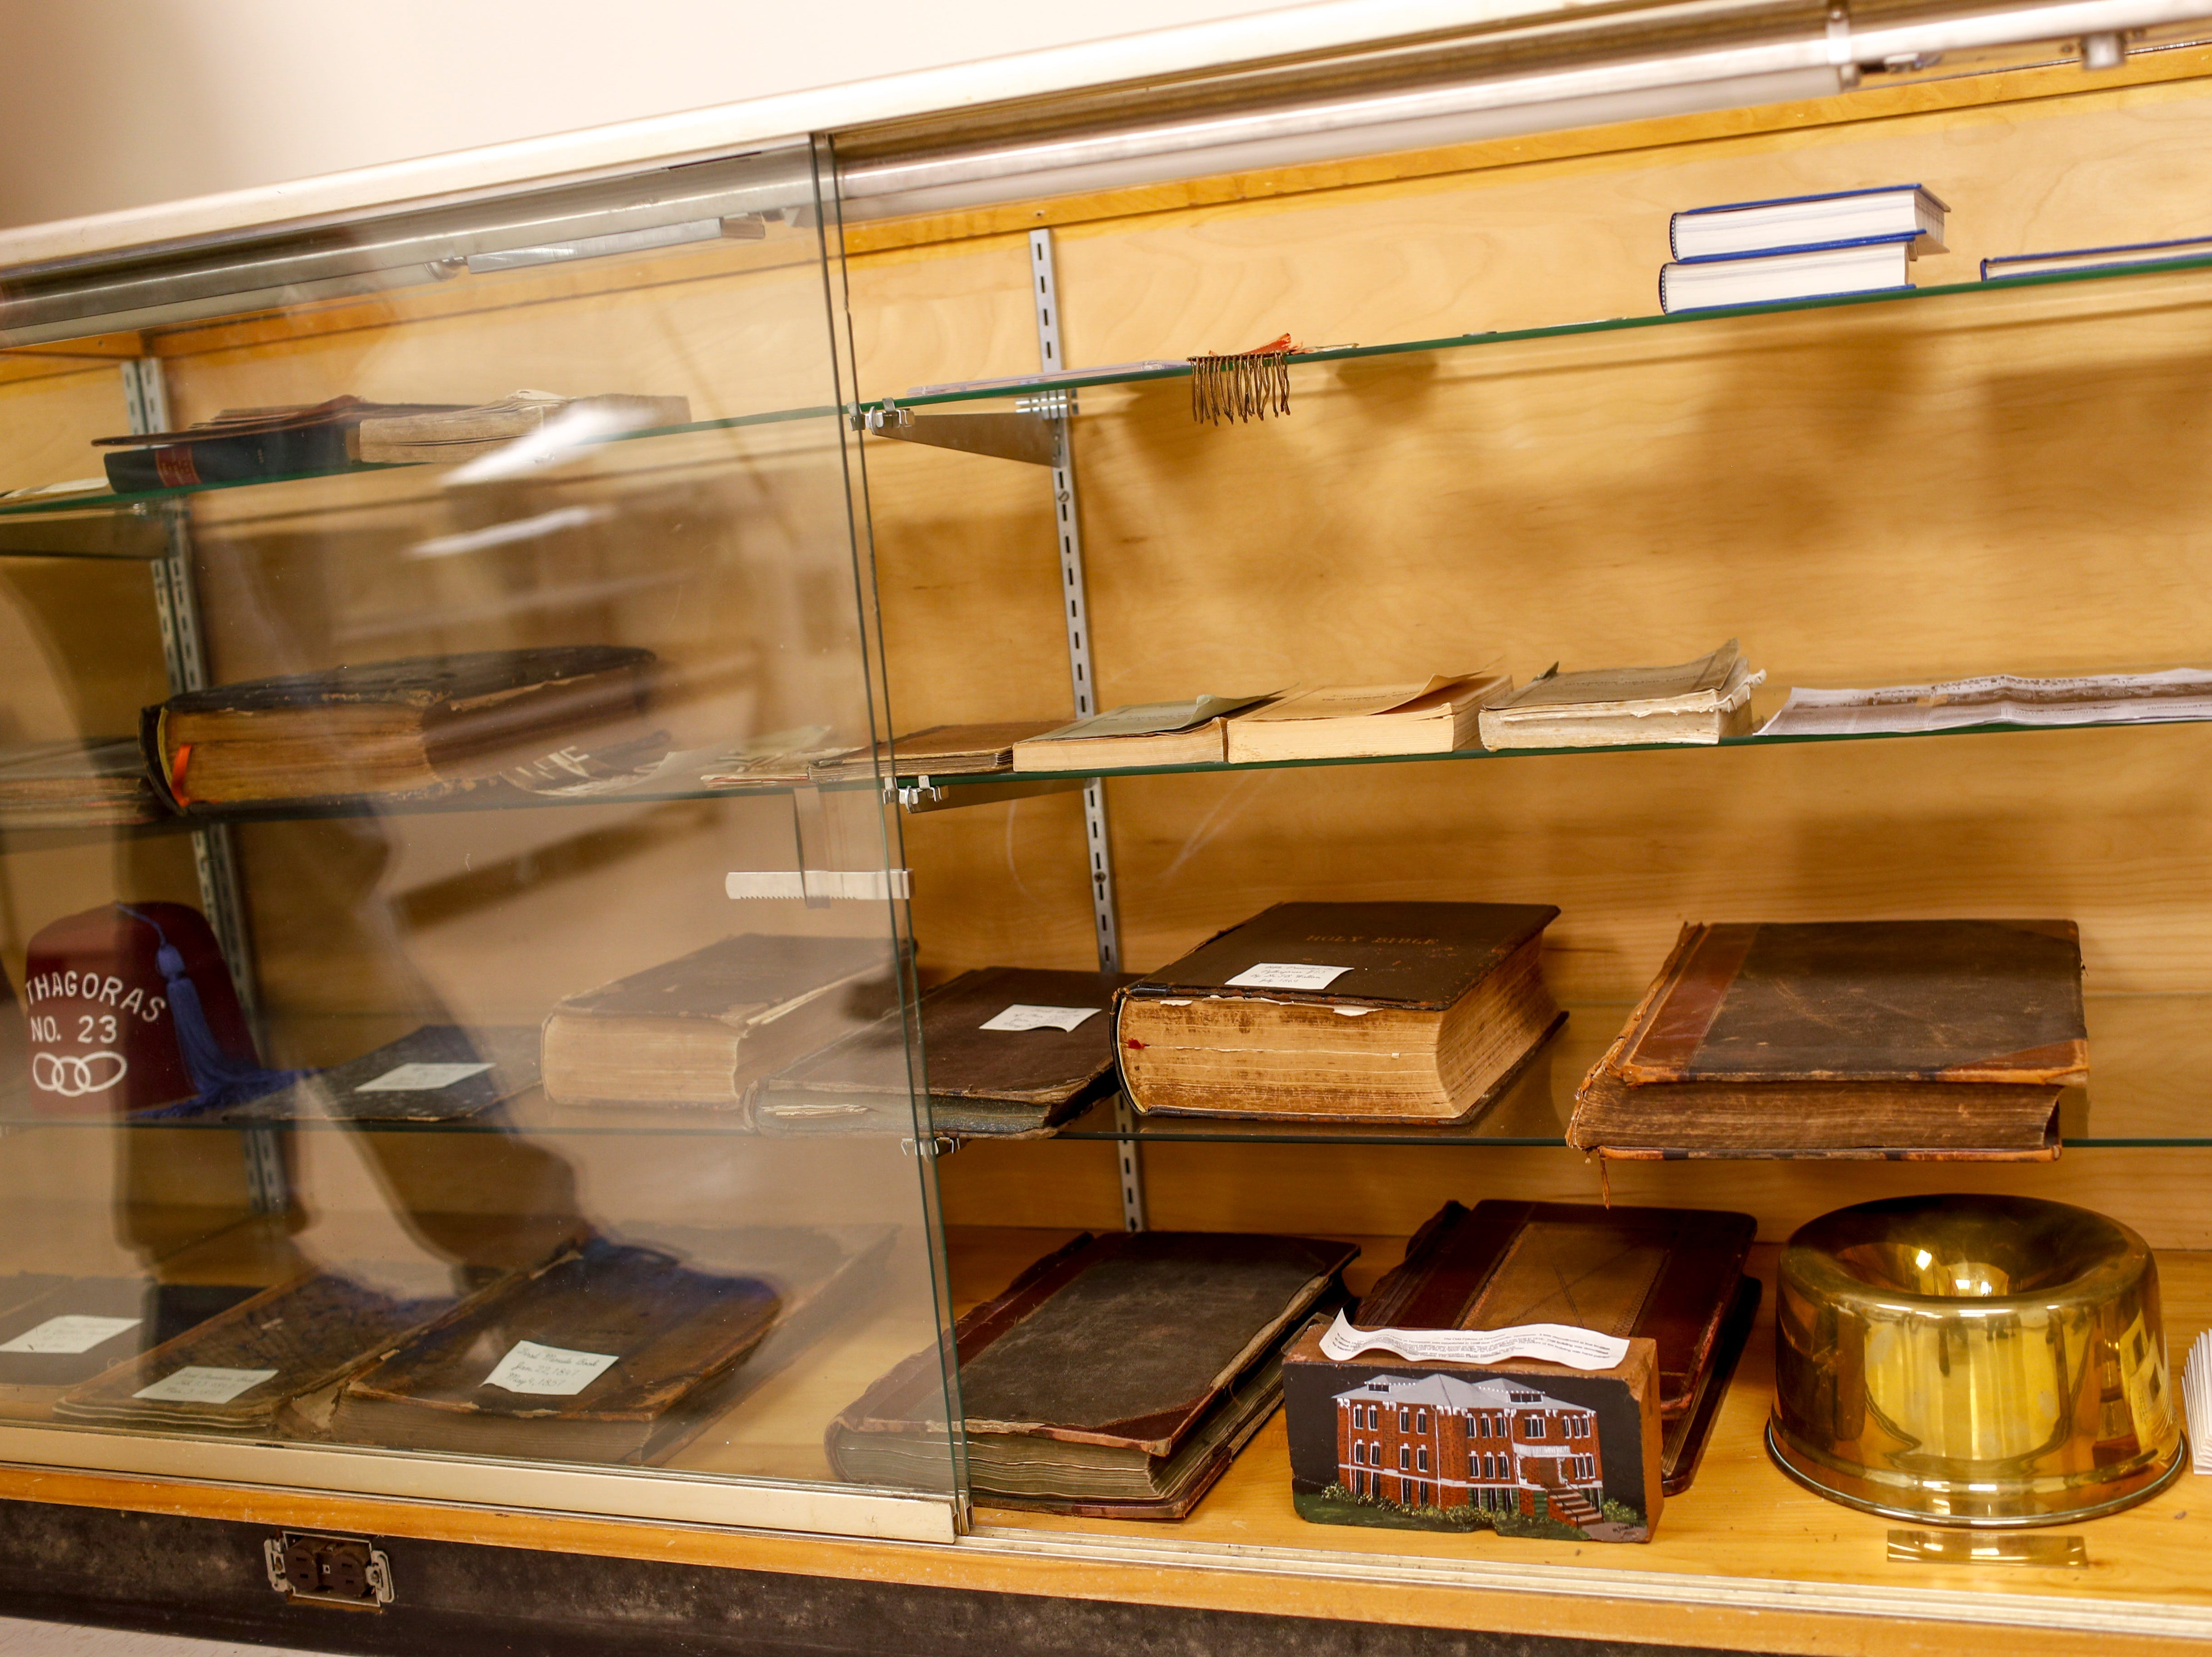 Old documents and historical objects unique to the Clarksville lodge and beyond are on display in a glass cabinet for viewing at Odd Fellow Lodge in Clarksville, Tenn., on Tuesday, April 23, 2019.